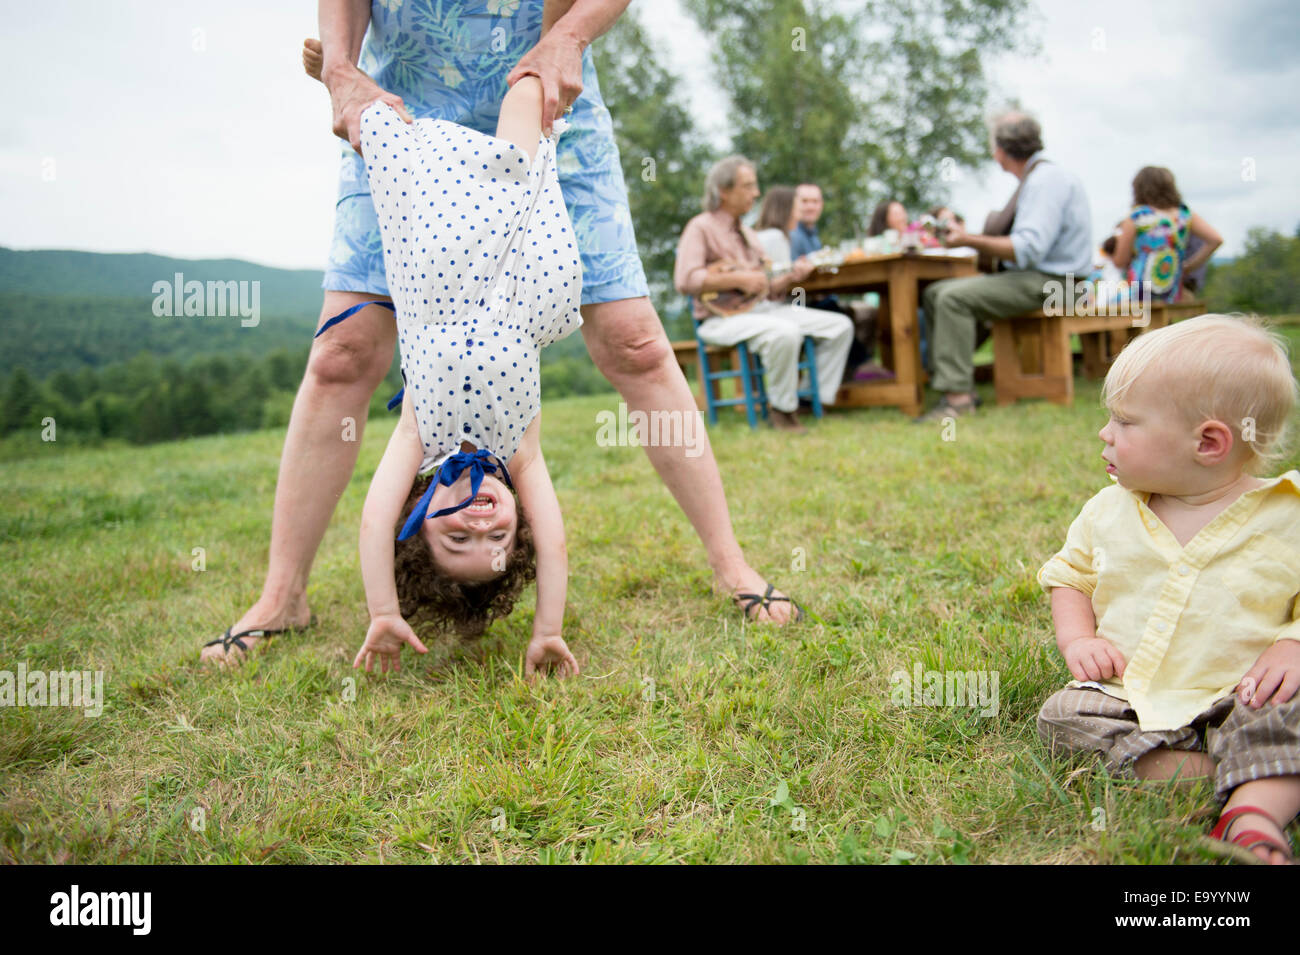 Female family member playfully holding toddler by legs at family gathering, outdoors - Stock Image